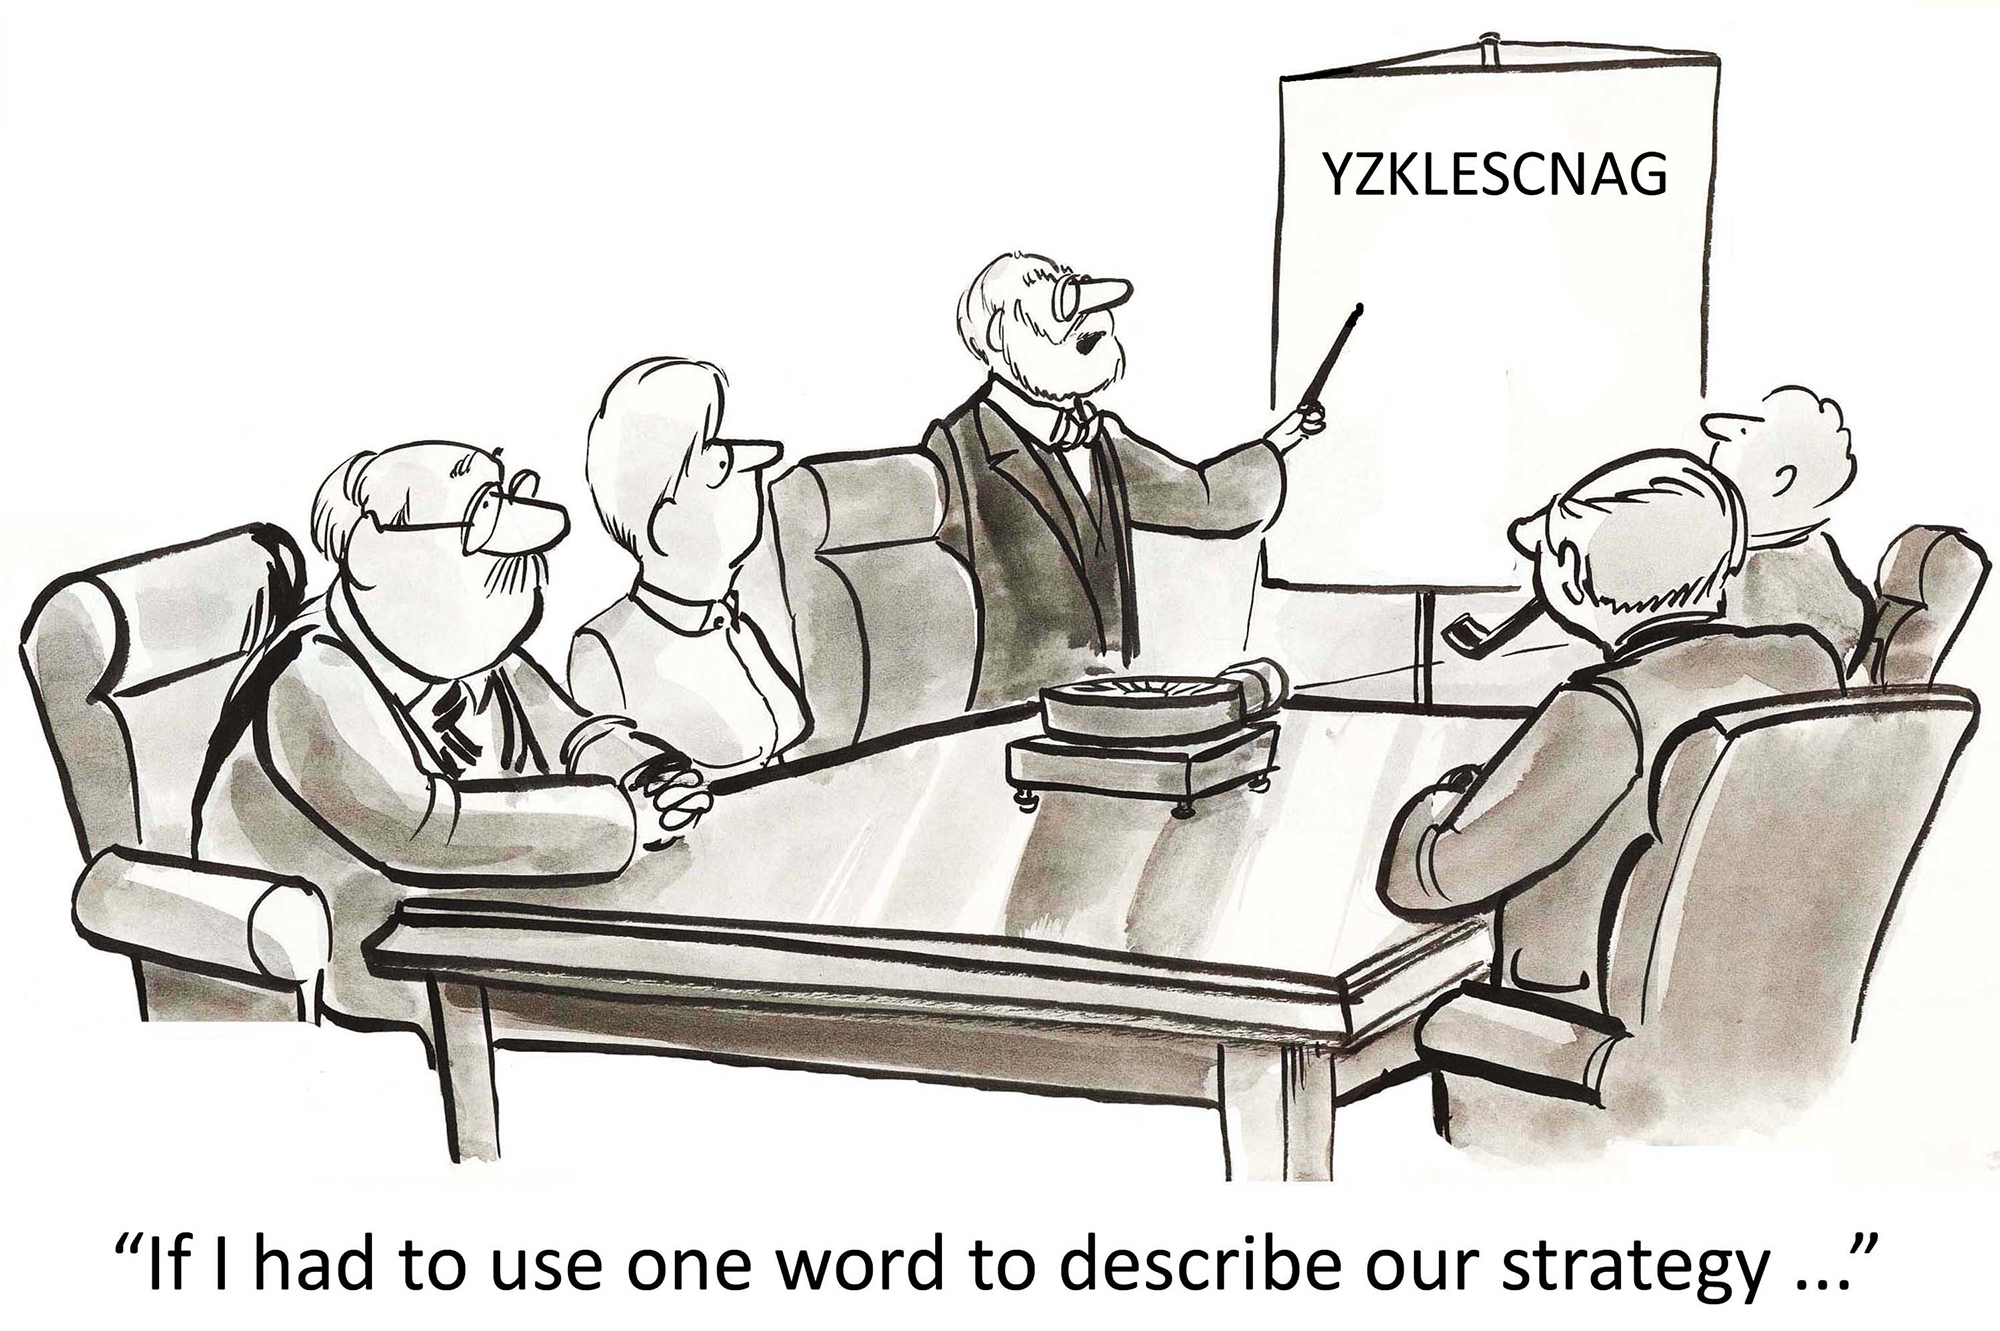 Language confusion can cause significant problems in business strategy development and effectiveness